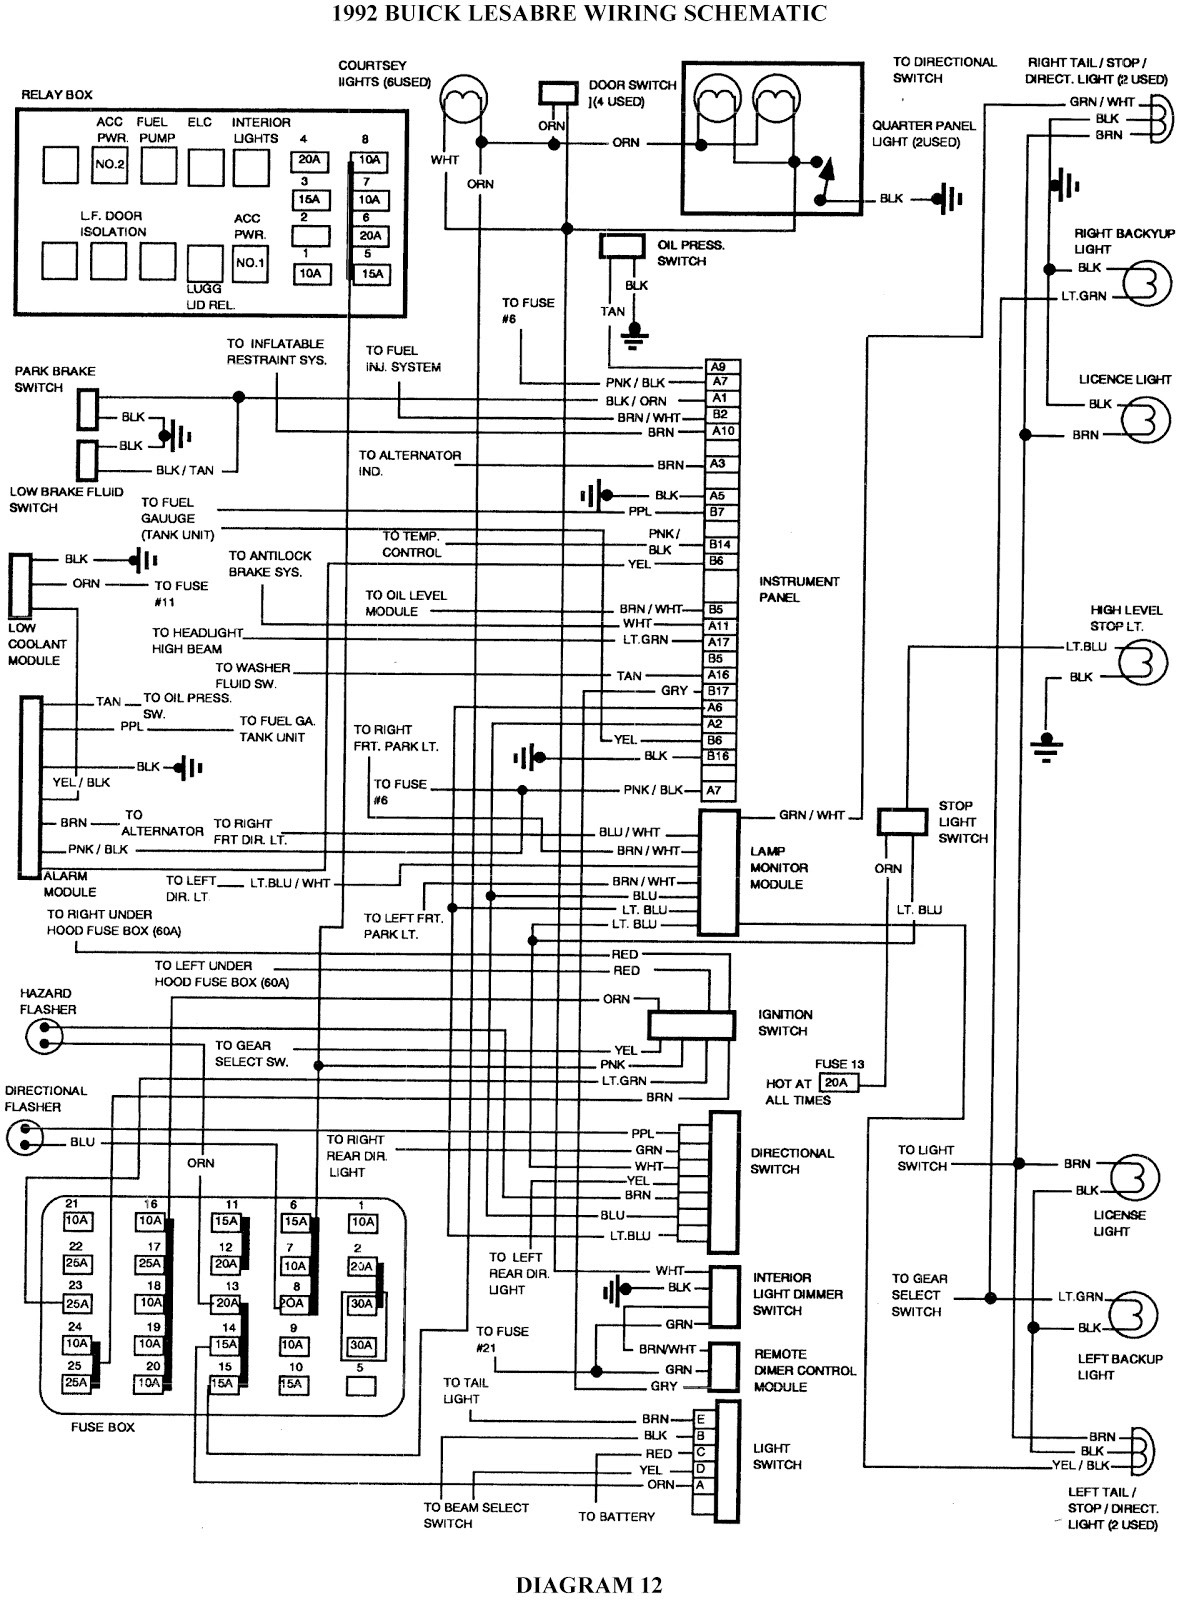 1993 buick custom 31 signal fuse box diagram